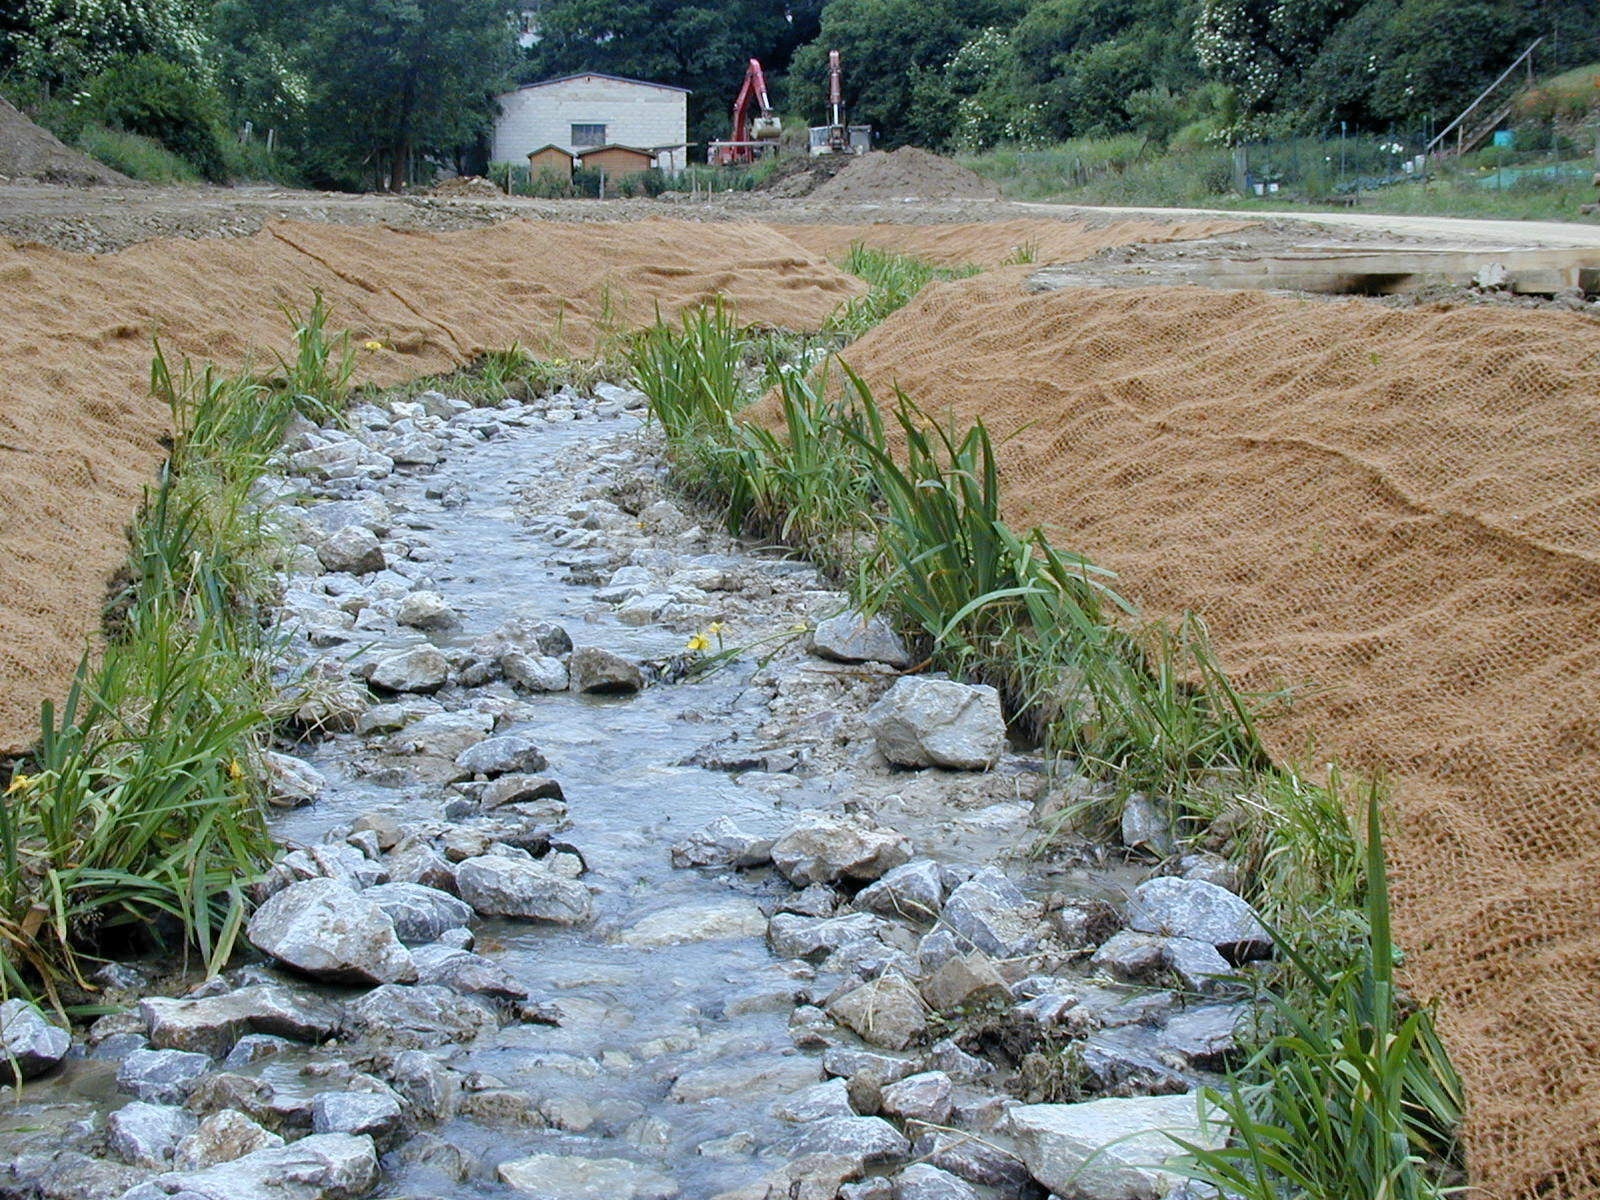 Other erosion prevention